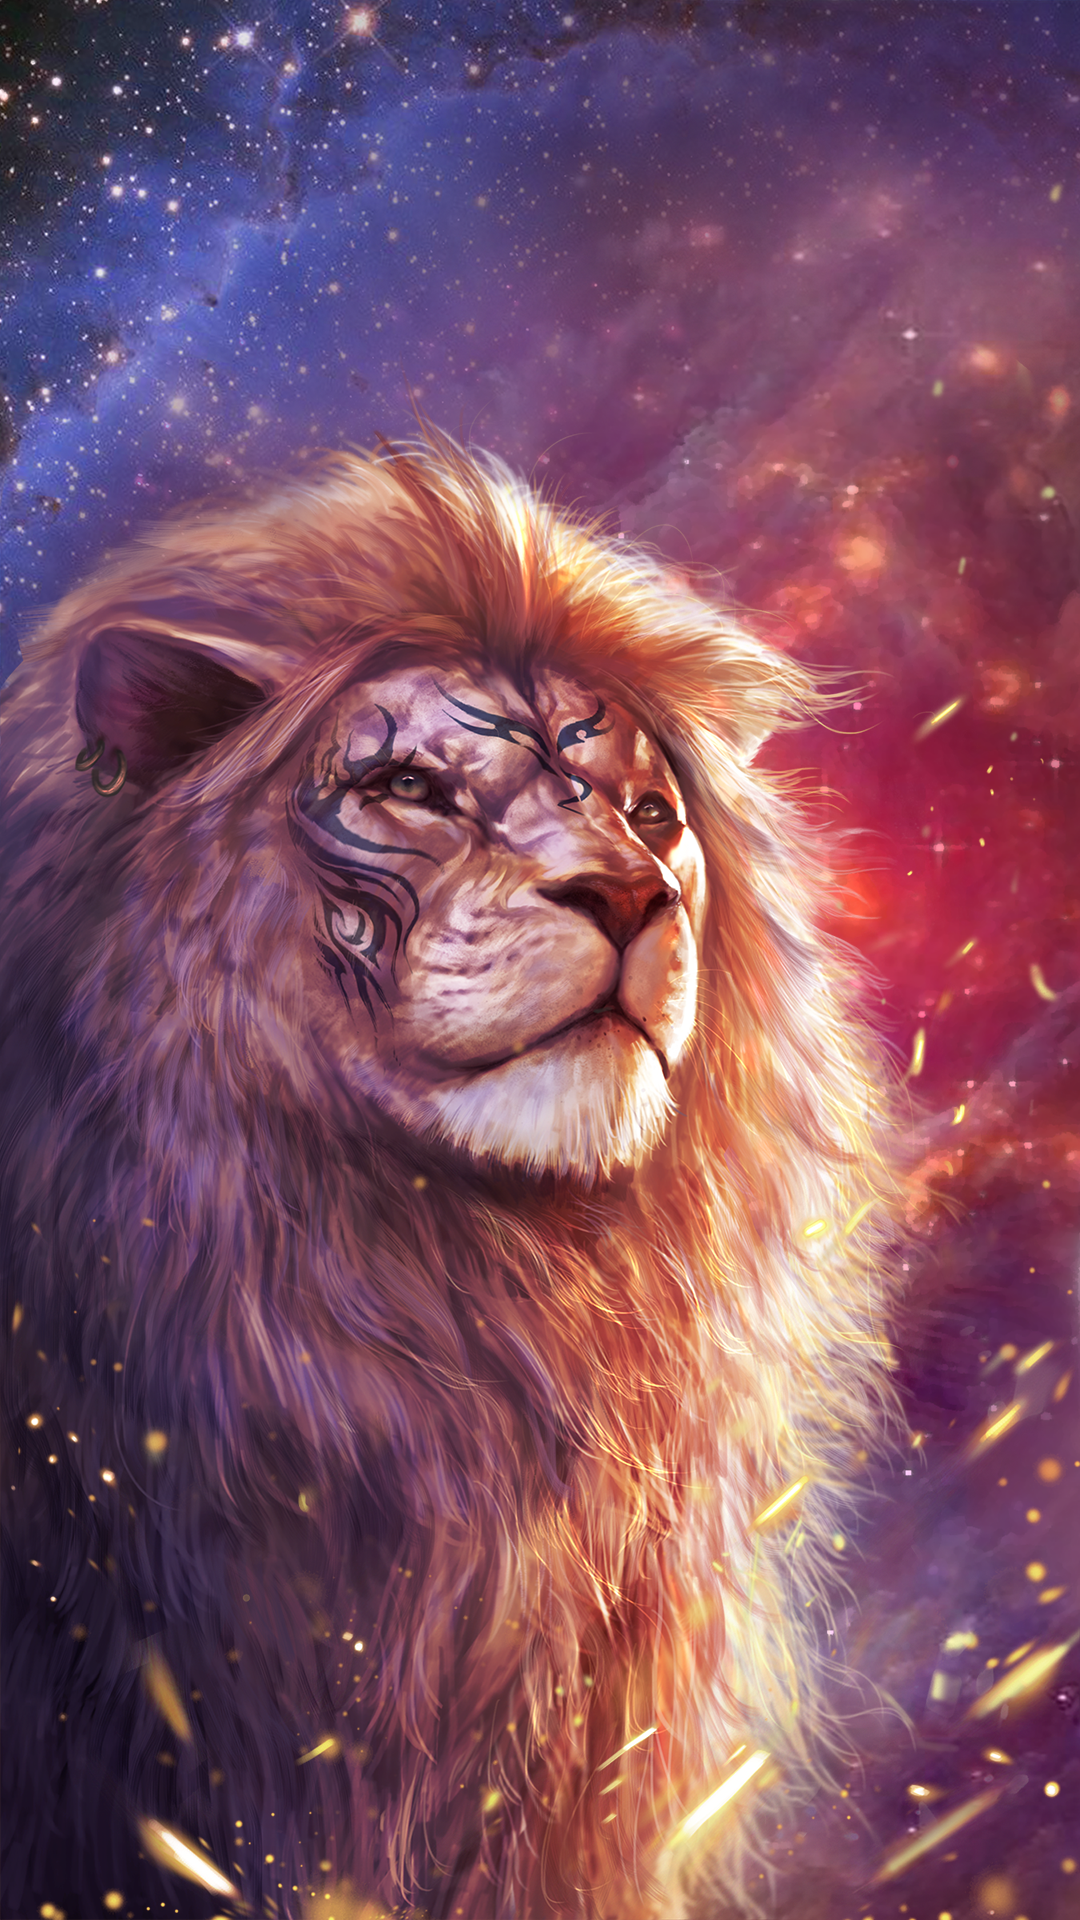 Cool lion wallpaper with totem tattoo Animal Tattoos in 2019 1080x1920